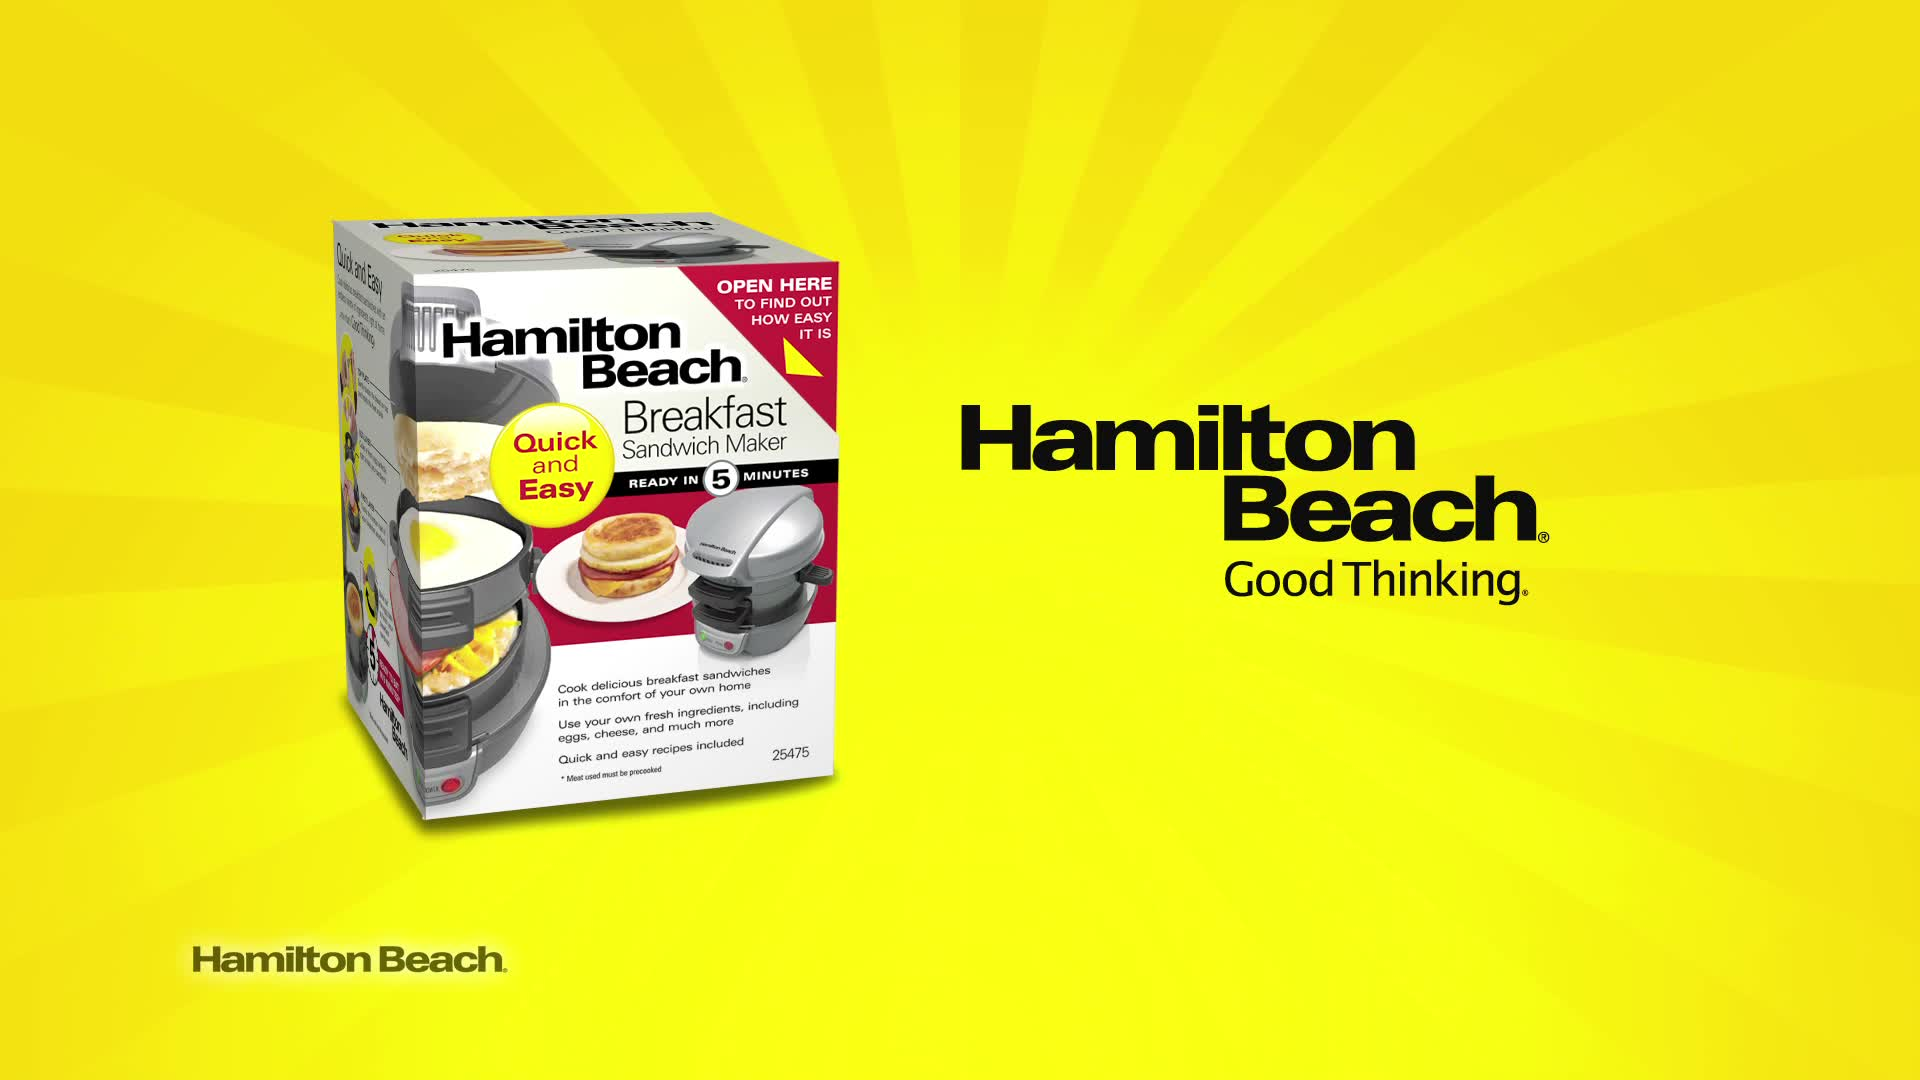 Hamilton Beach 174 Breakfast Sandwich Maker Bed Bath Amp Beyond